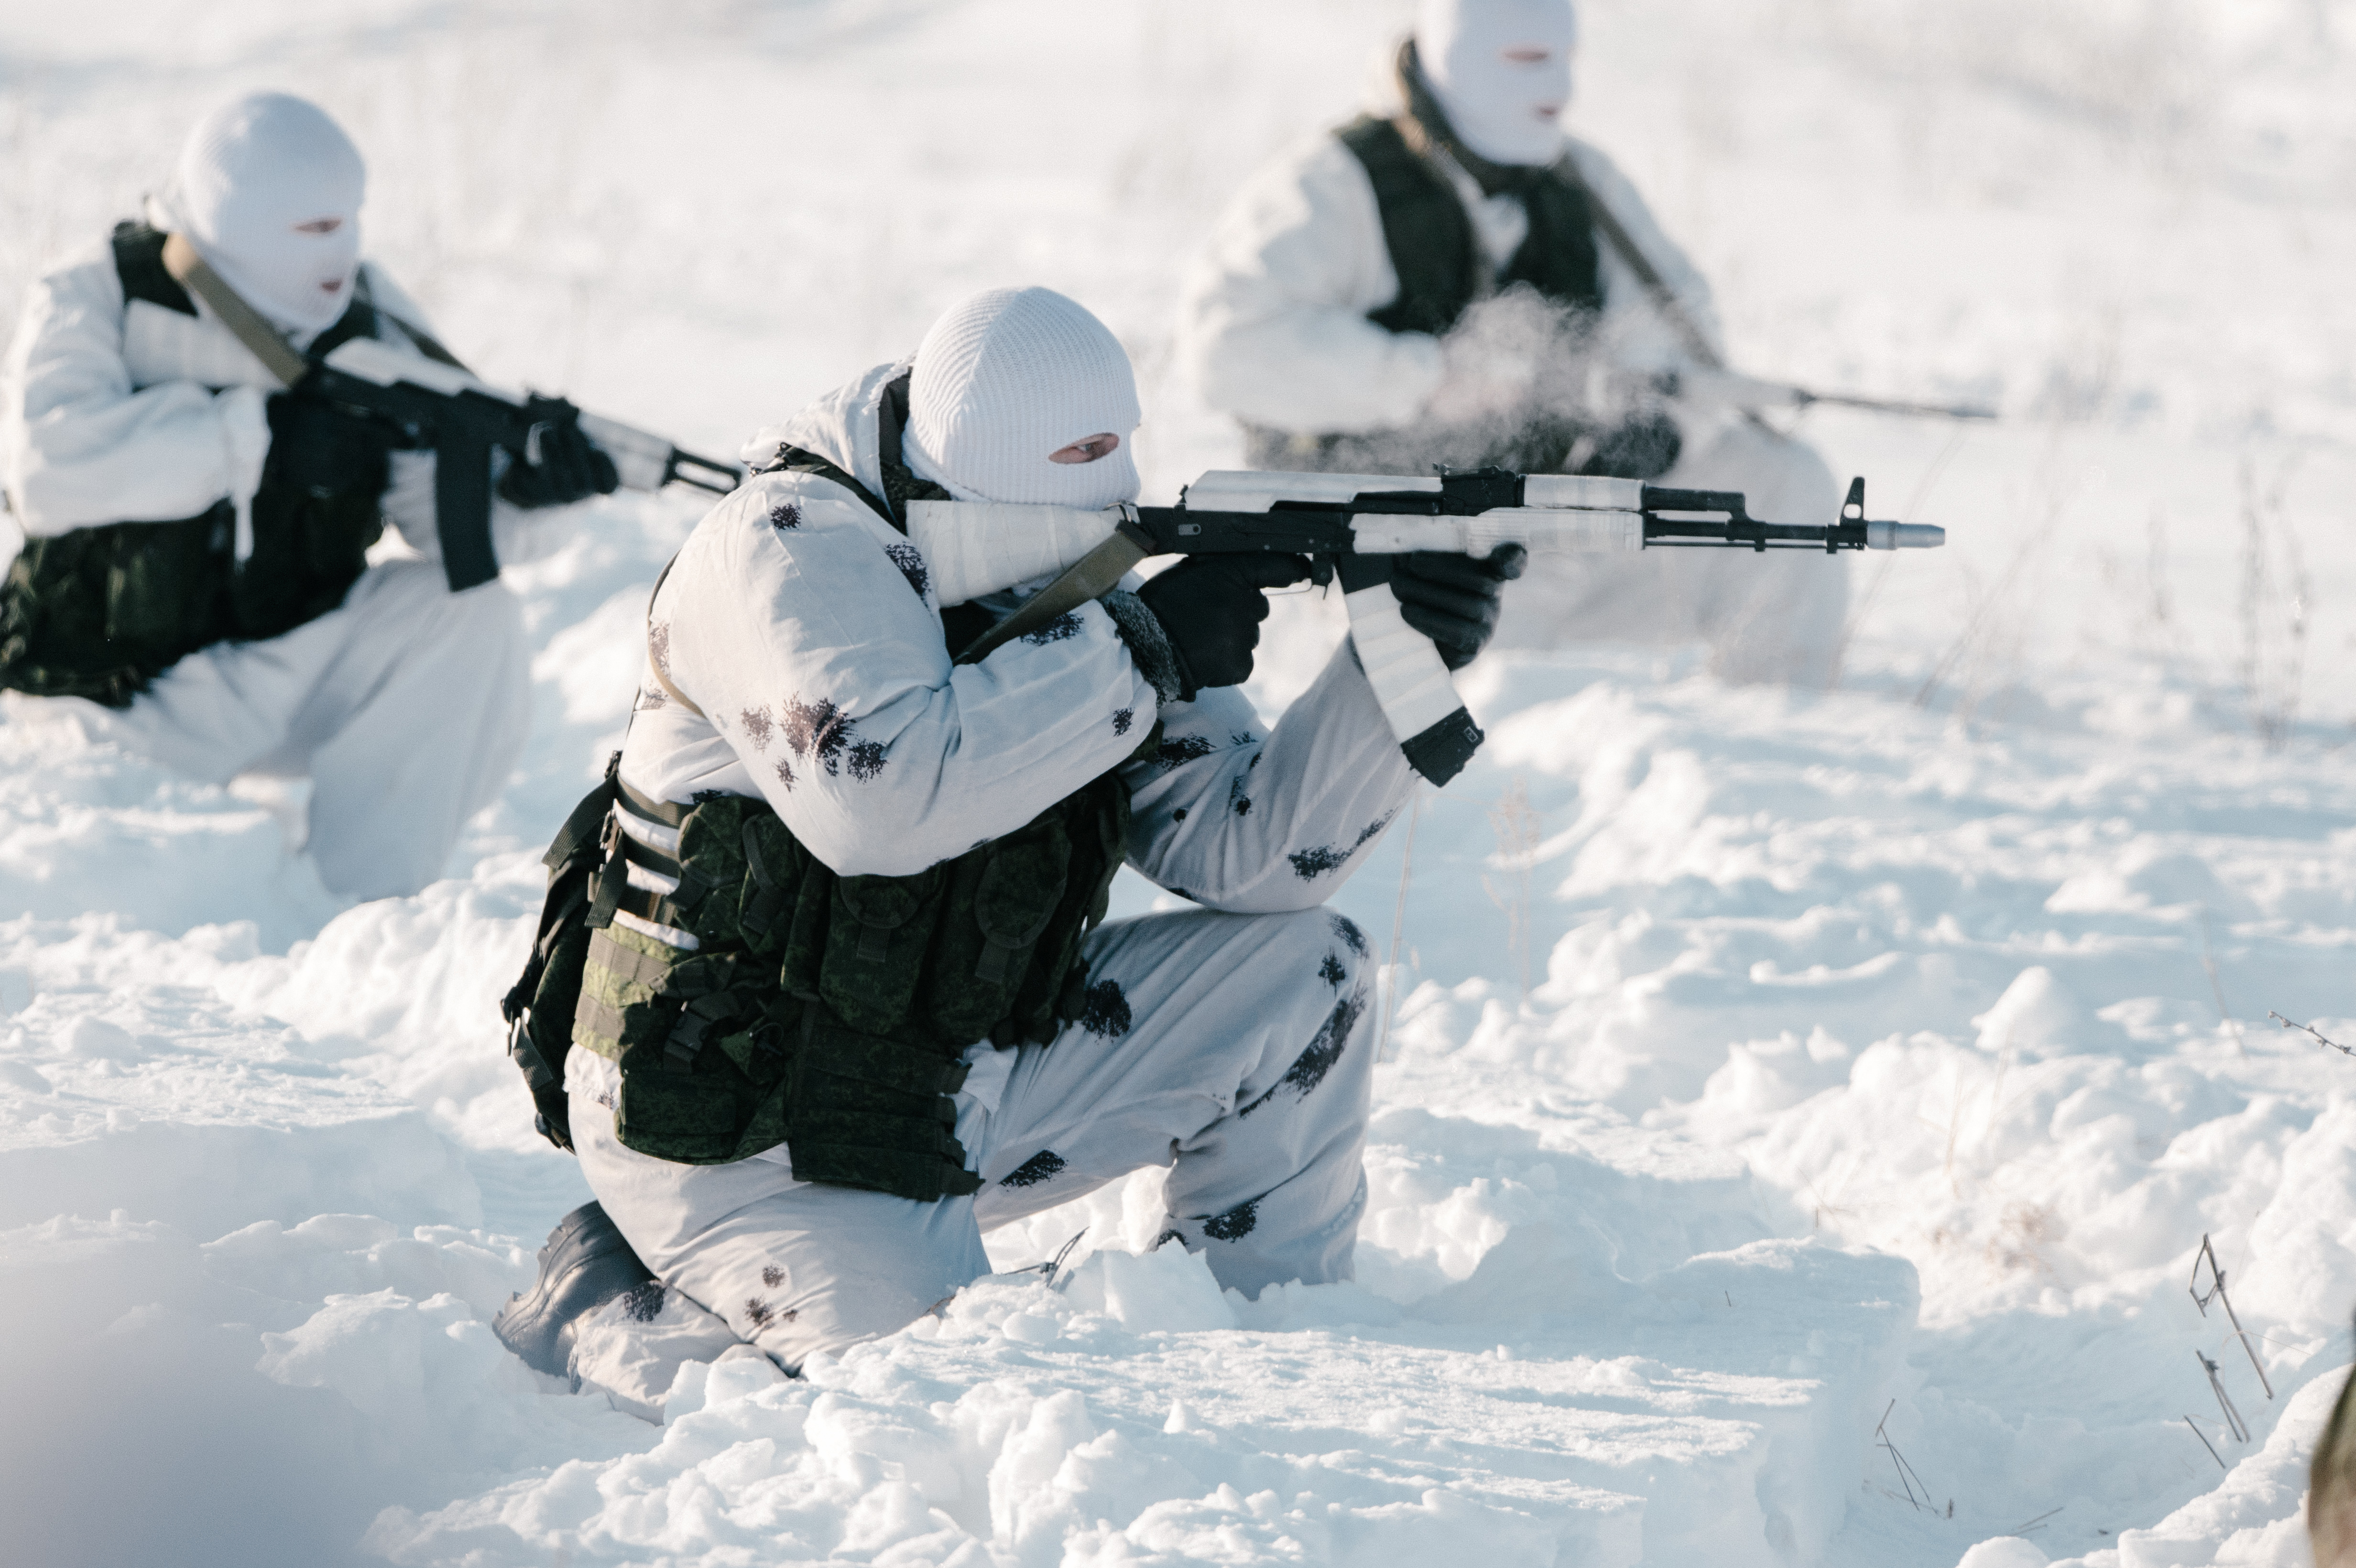 Arctic cold war: climate change has ignited a new polar